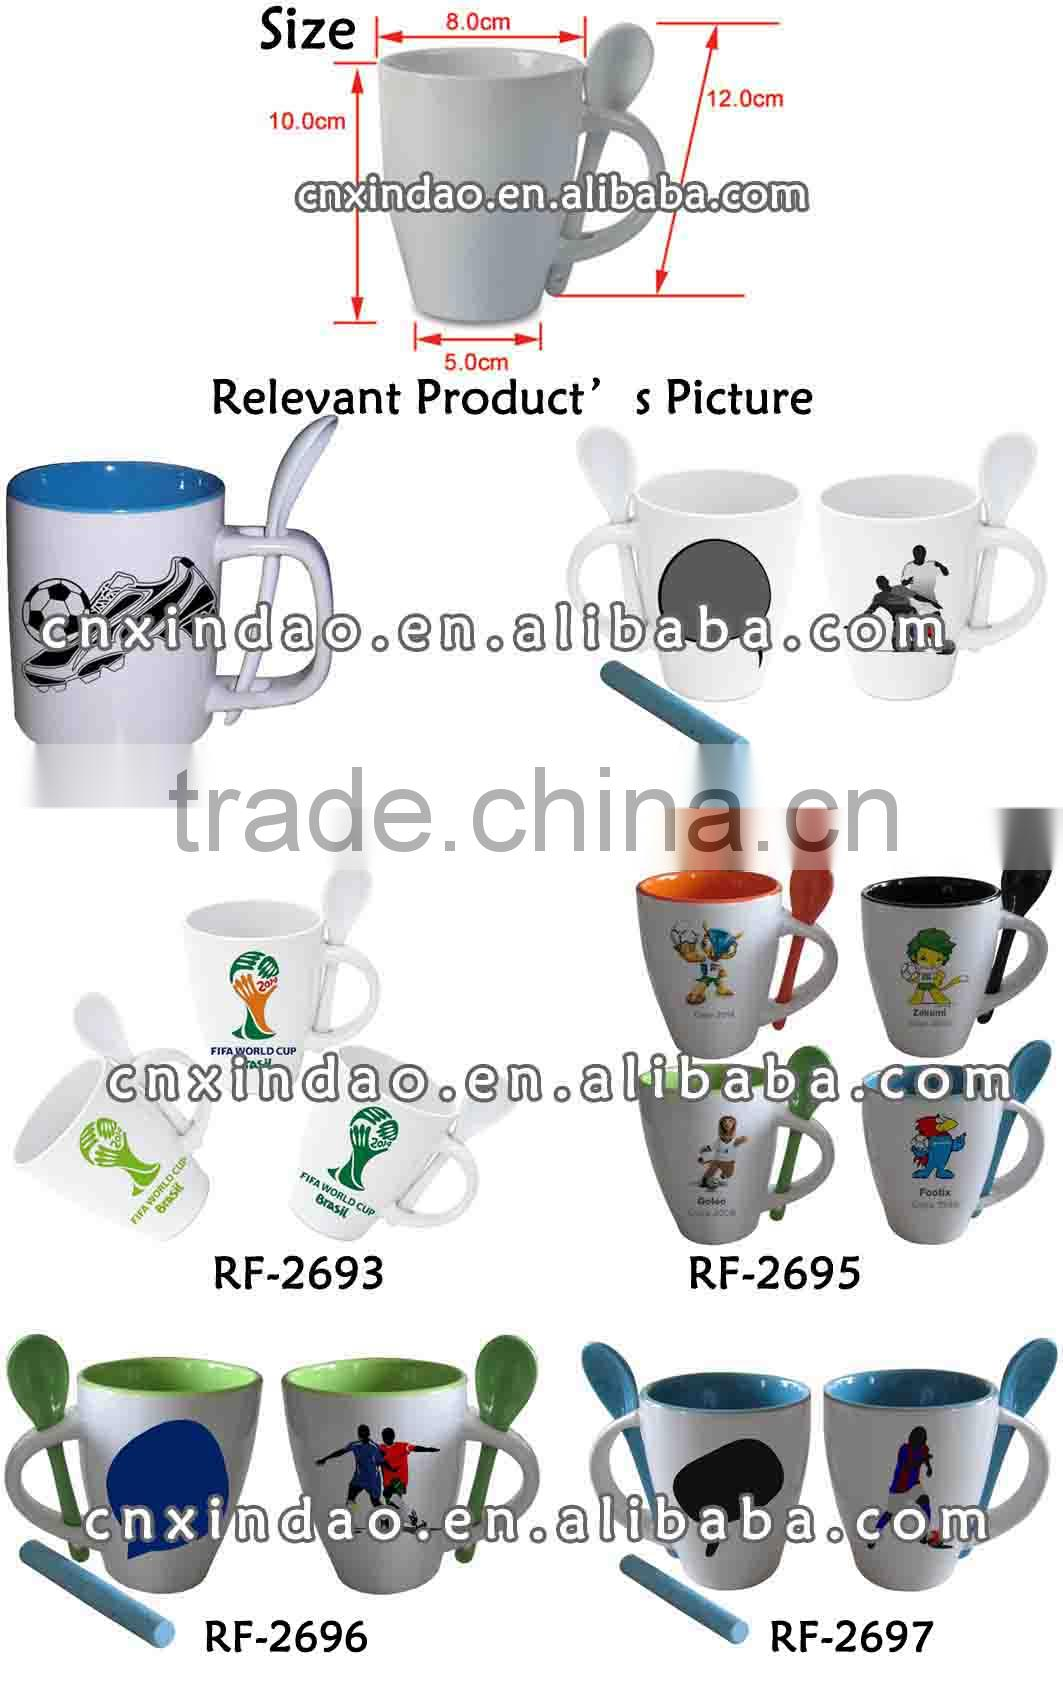 Hot Sale World Cup 2014 Ceramic Mugs with Spoon Holder